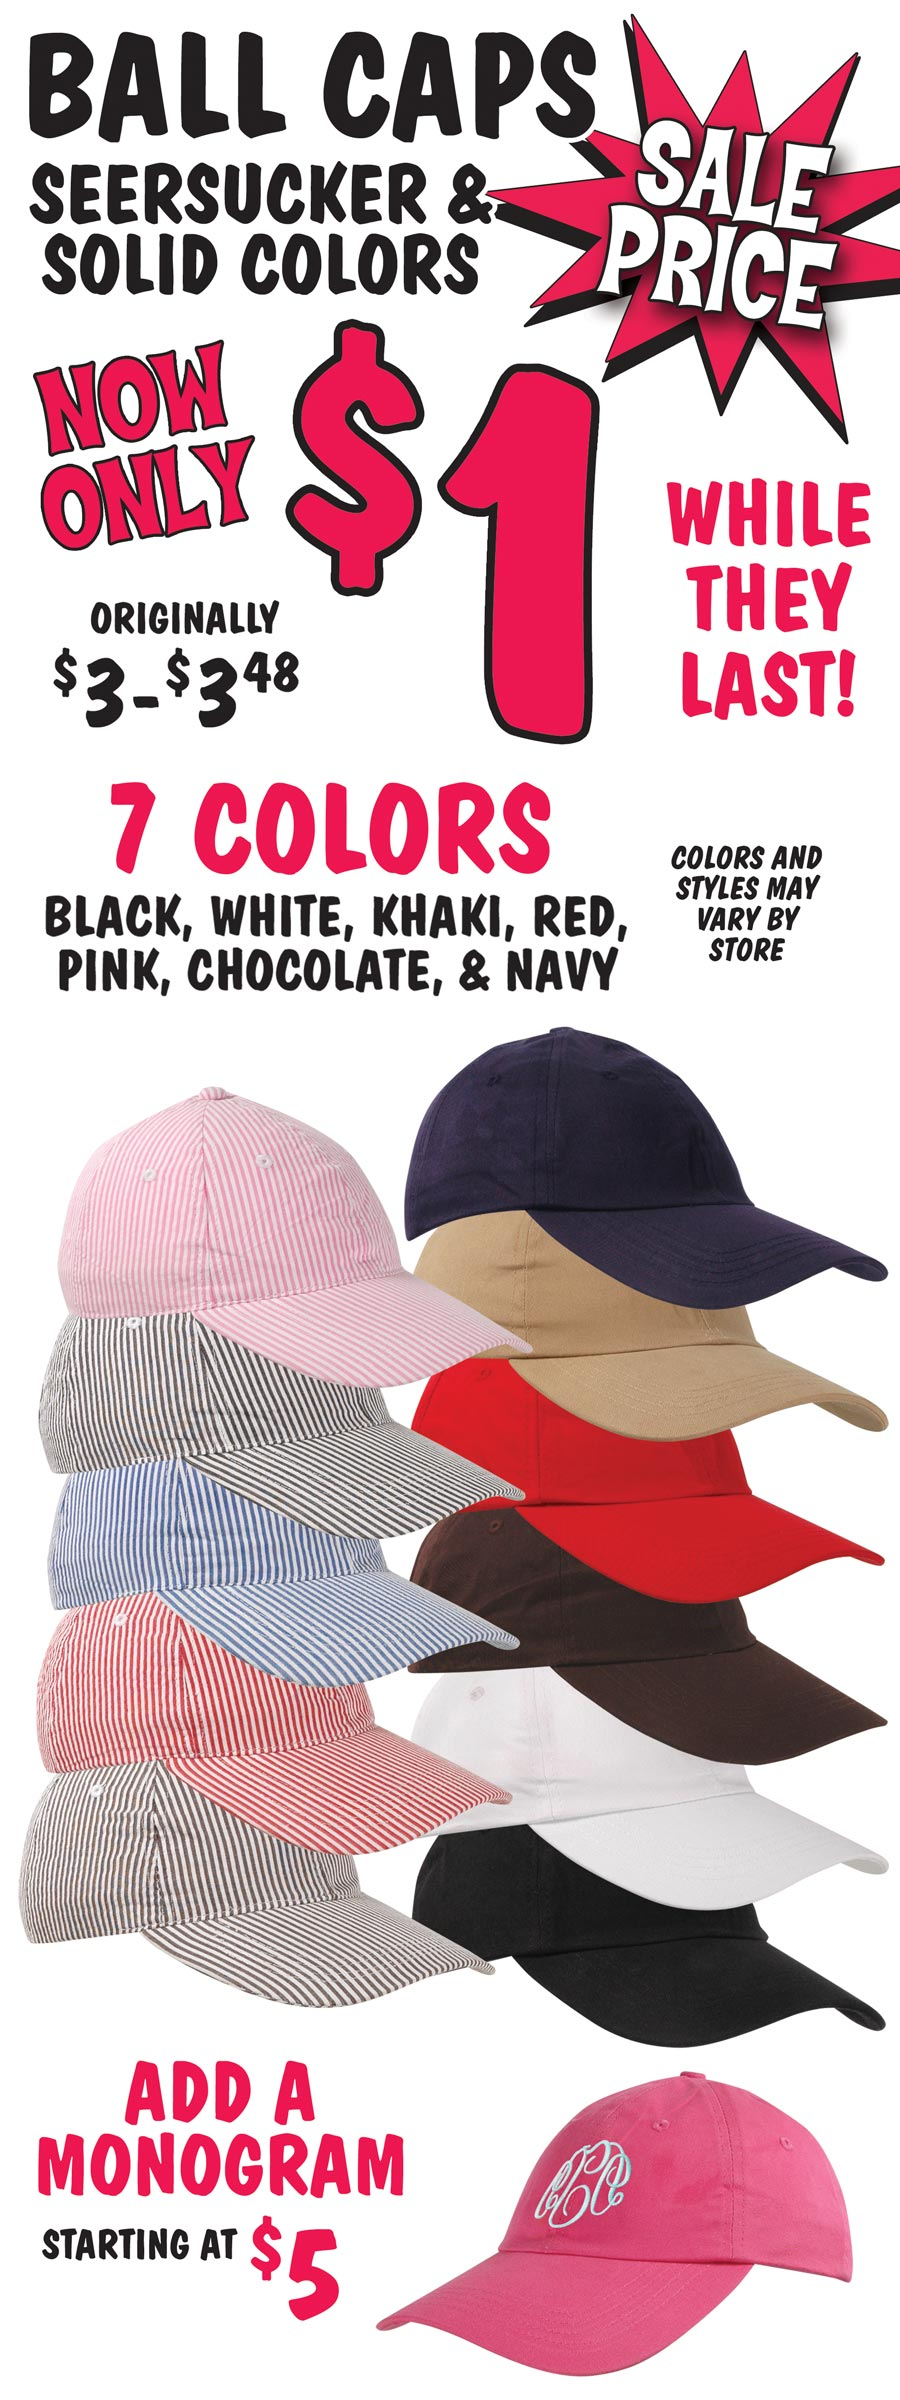 Ball Caps On Sale for $1 - Solid and Seersucker Styles in 7 Colors